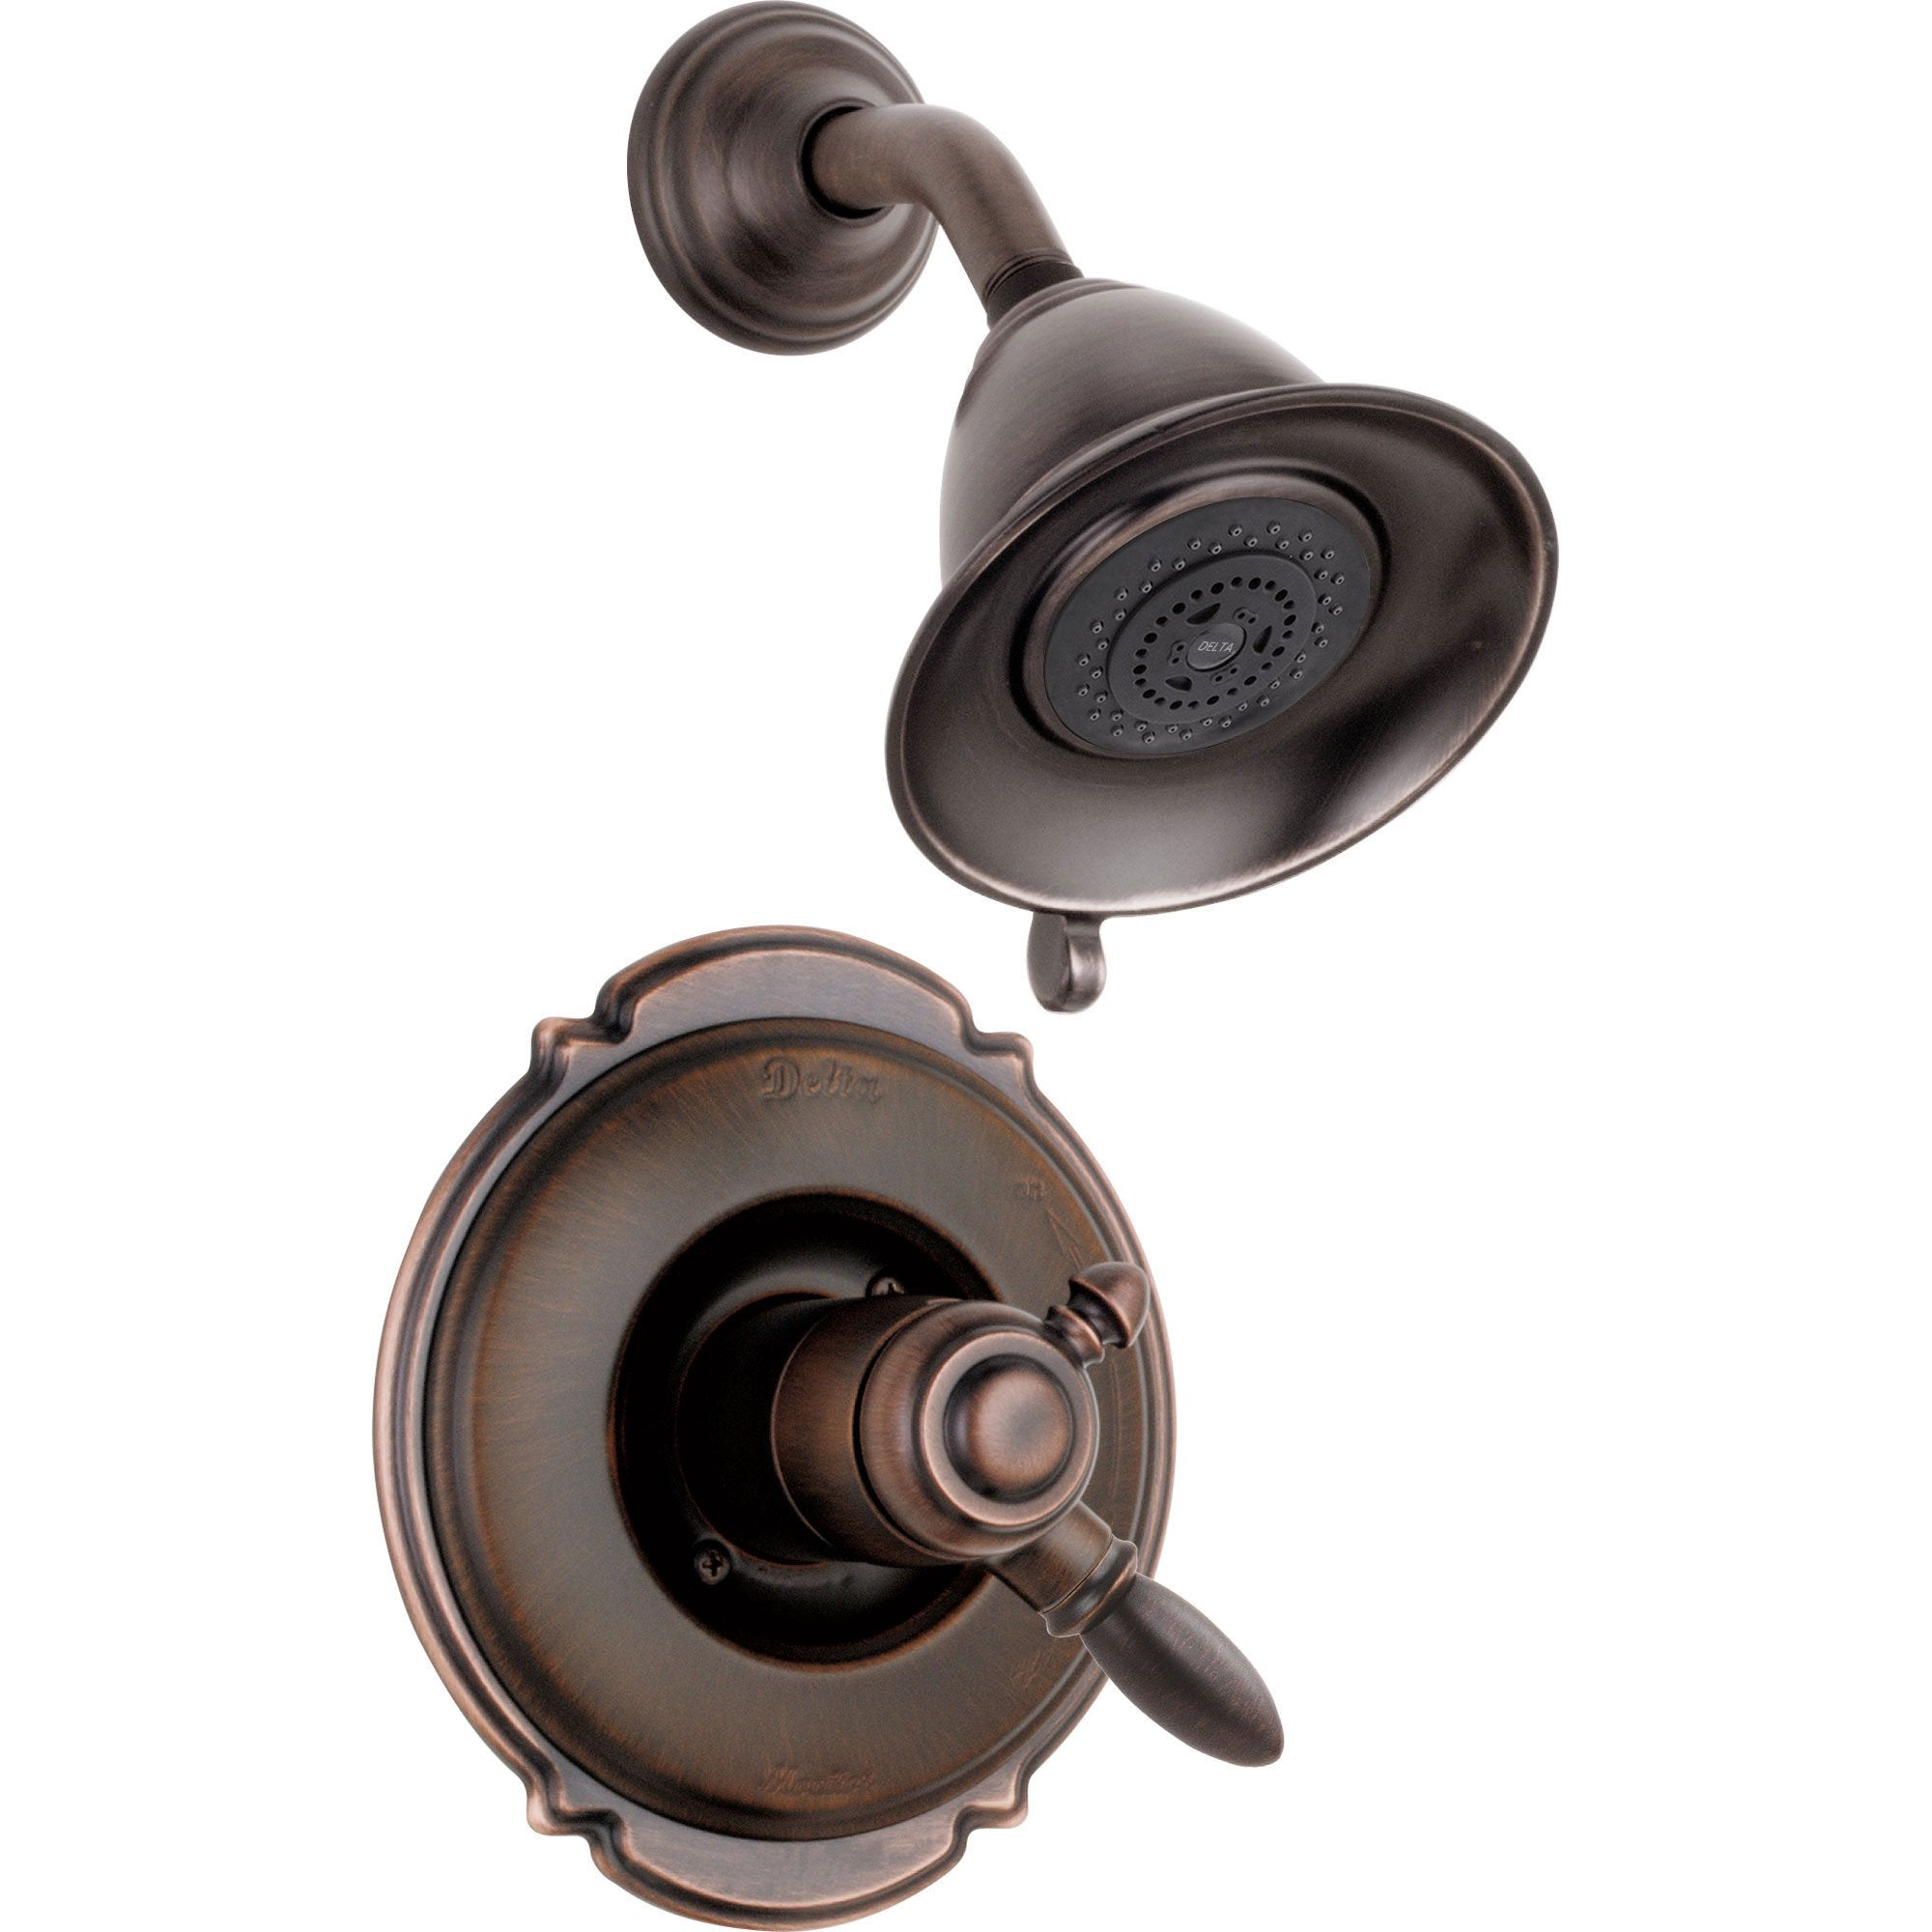 Delta Victorian Dual Control Temp/Volume Venetian Bronze Shower with Valve D699V